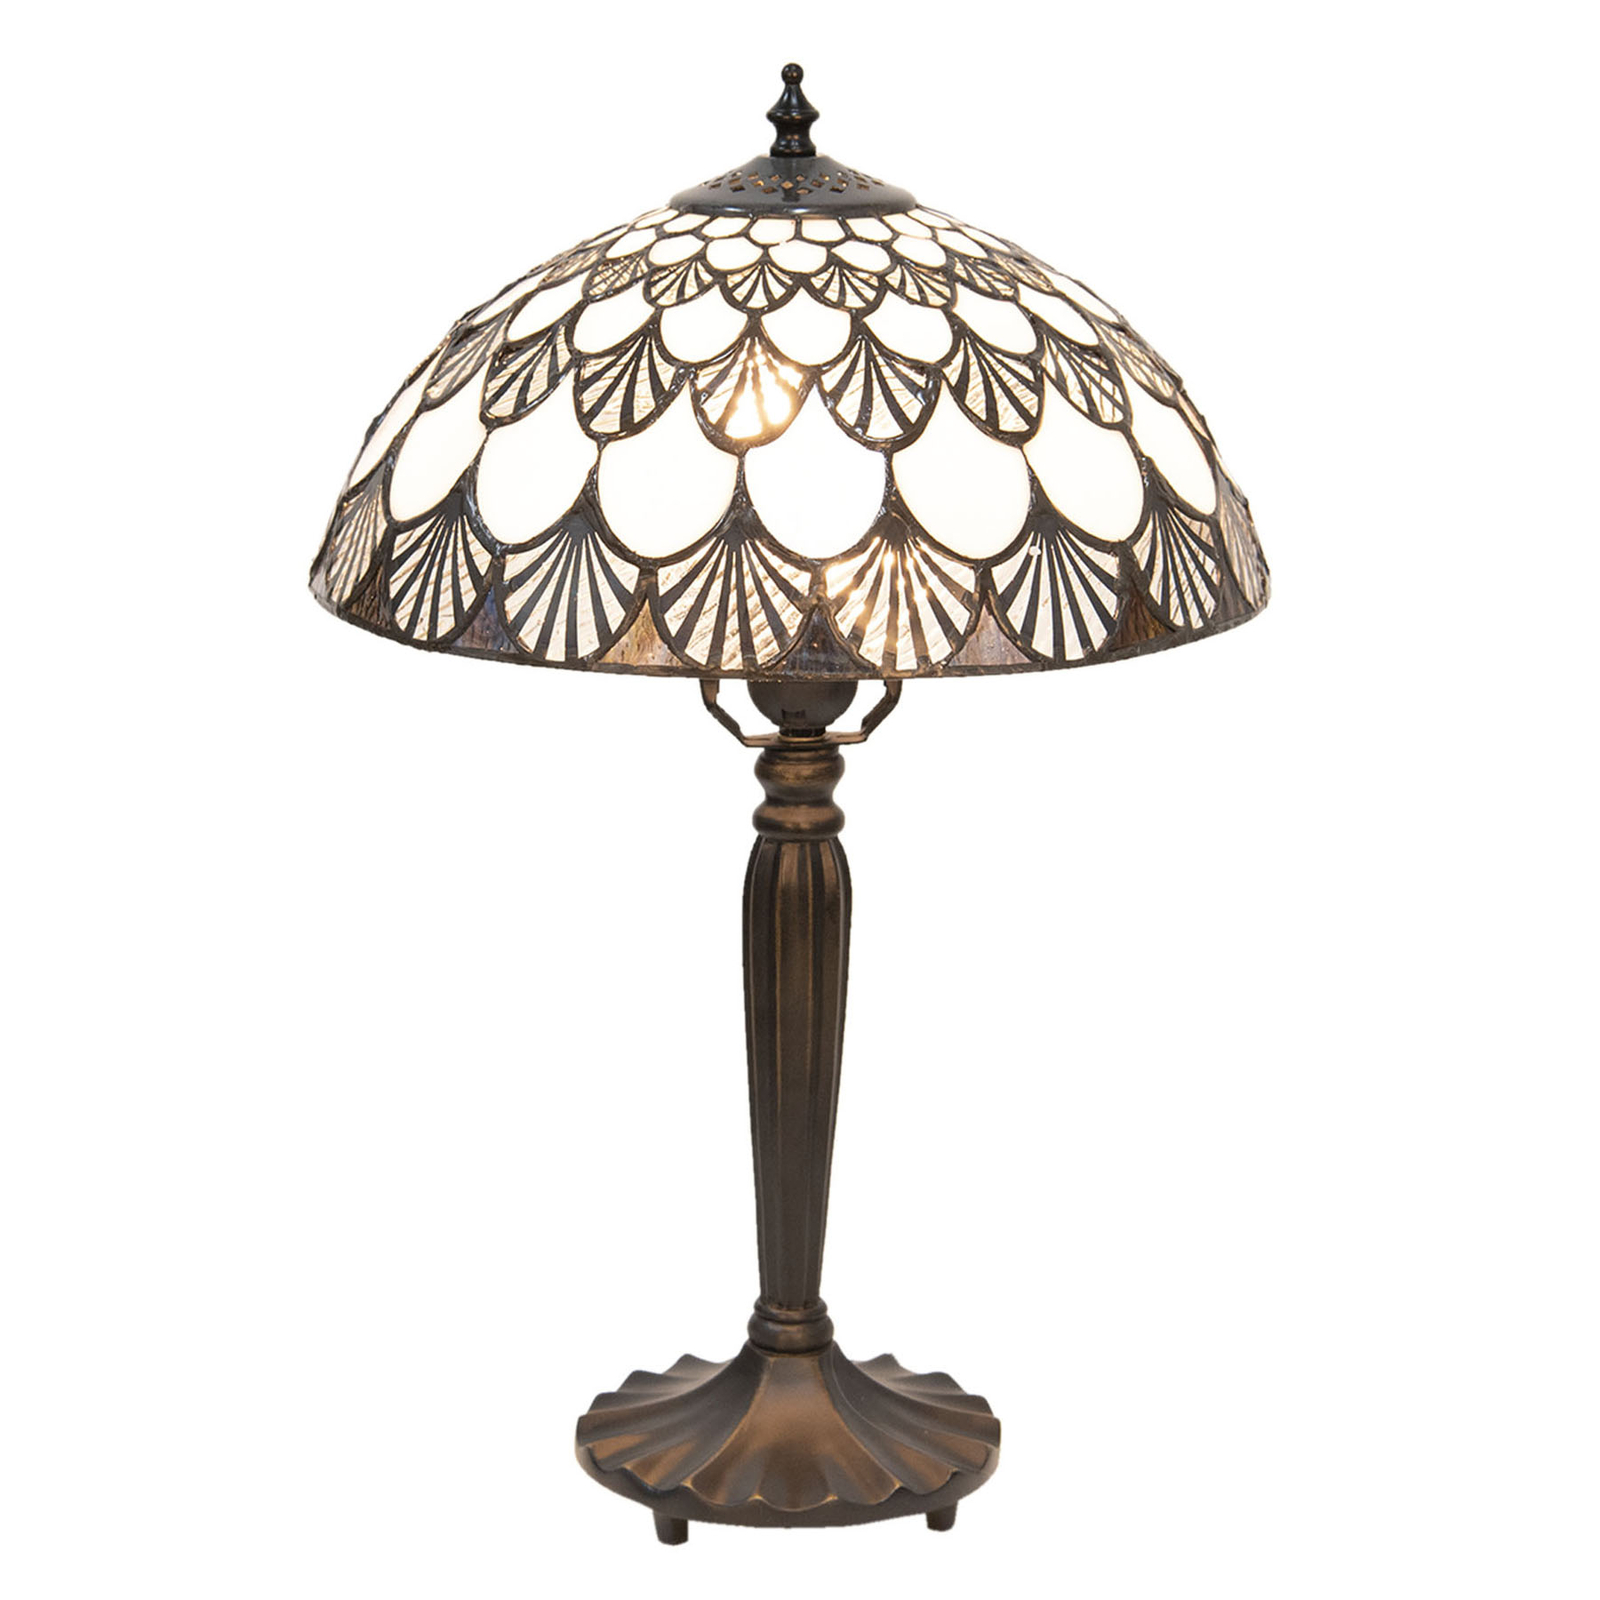 Lampe à poser 5998 motif coquillage, look Tiffany